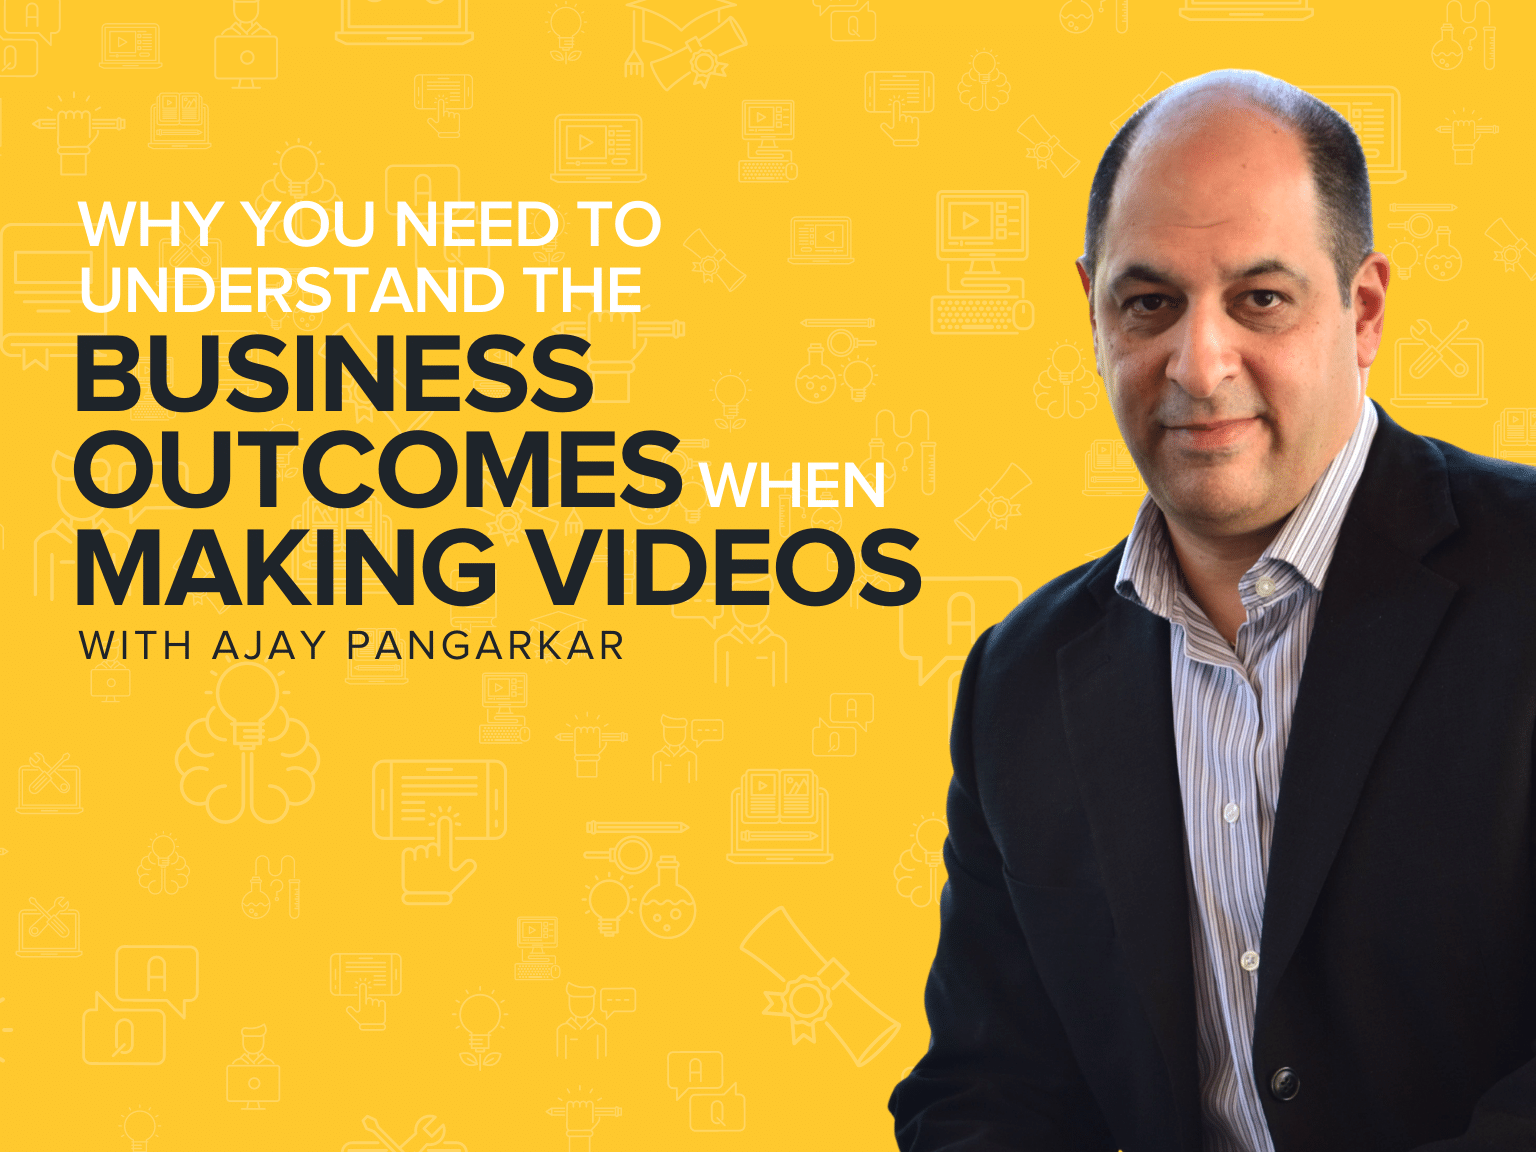 Why You Need to Understand the Business Outcomes When Making Videos